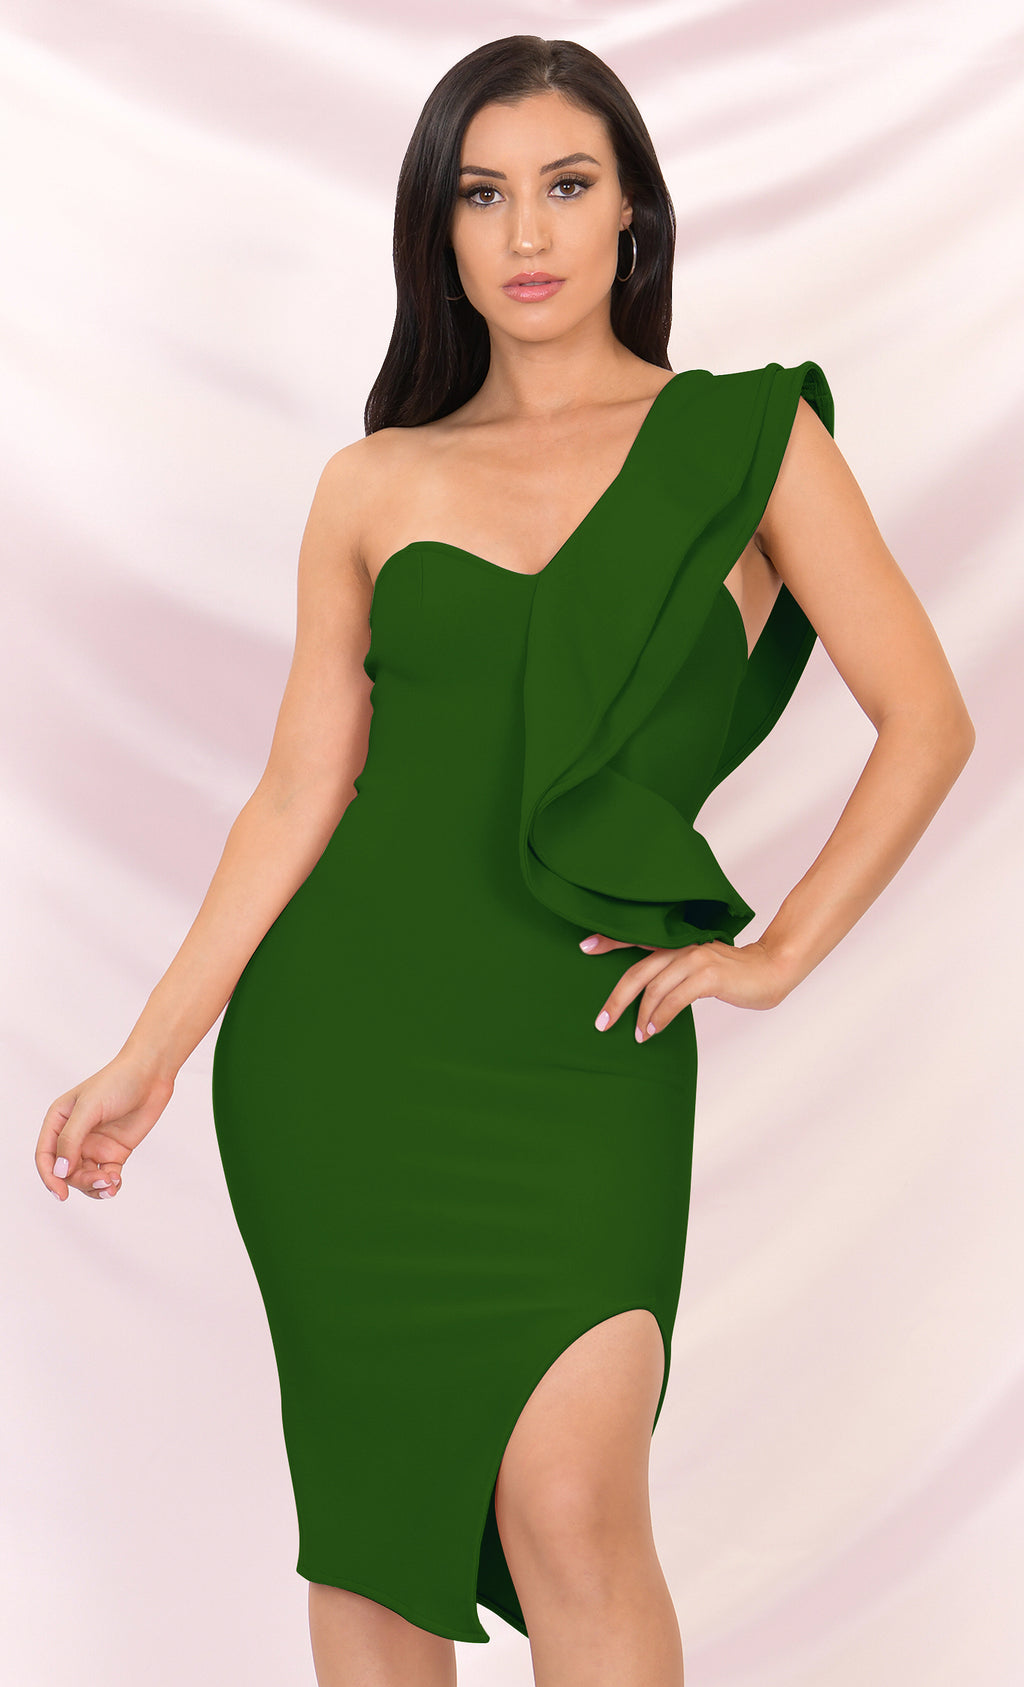 Prize Winner Forest Green Sleeveless Bandage One Shoulder Ruffle Bodycon Side Slit Midi Dress